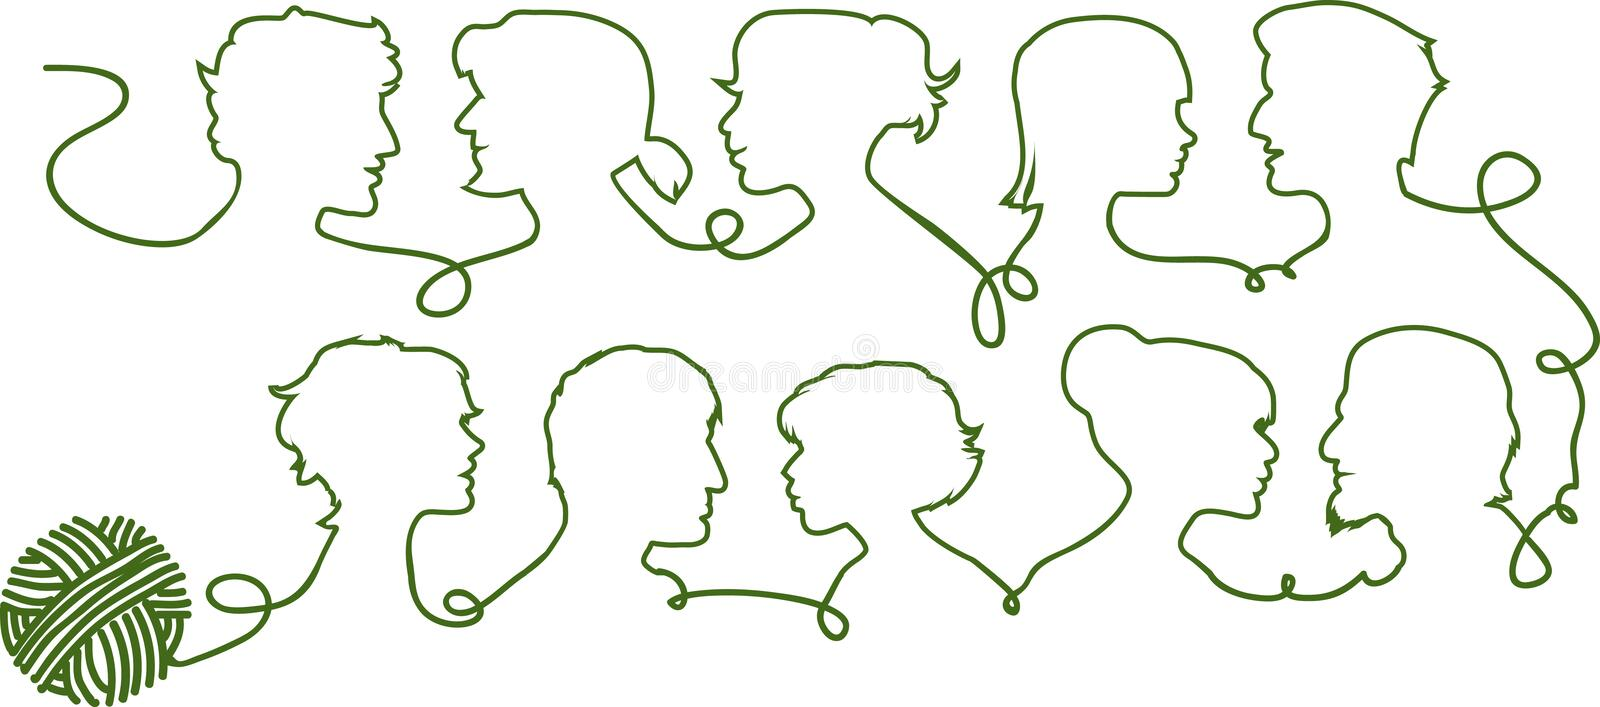 Download People silhouettes stock illustration. Image of join - 17670664